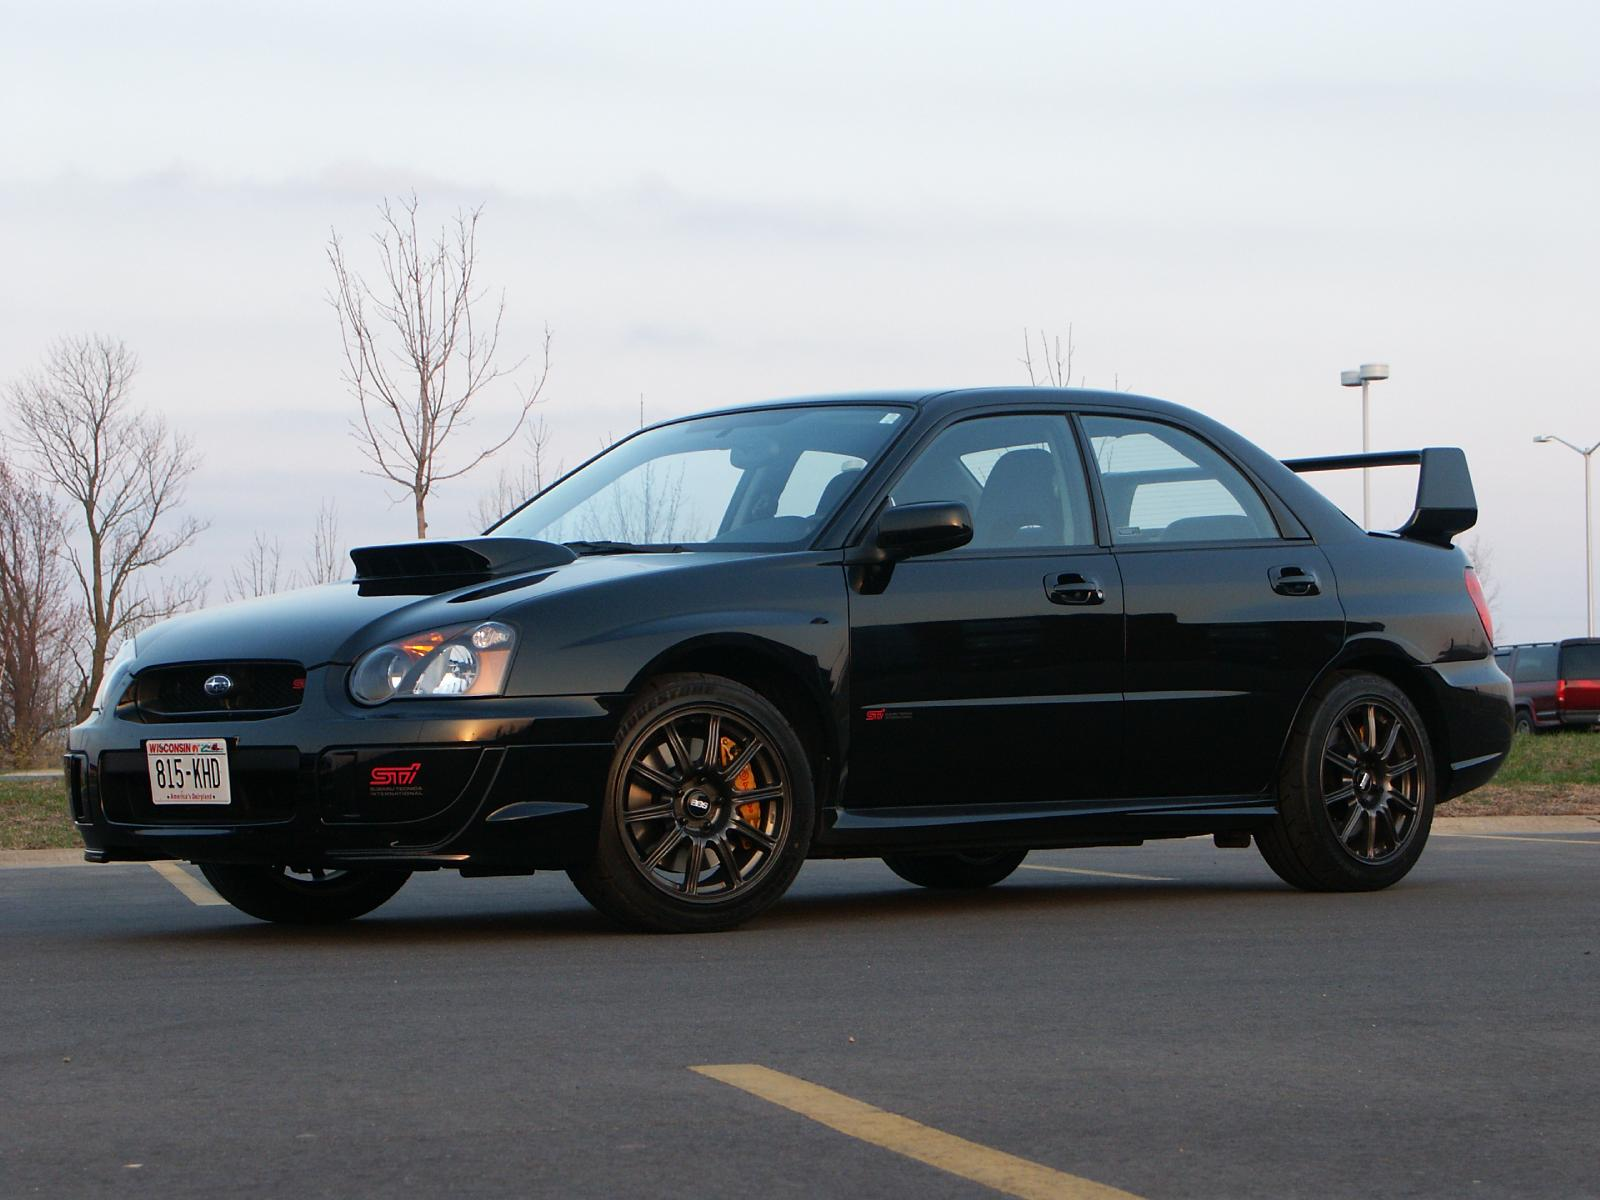 2005 subaru impreza wrx sti 1/4 mile trap speeds 0-60 - dragtimes